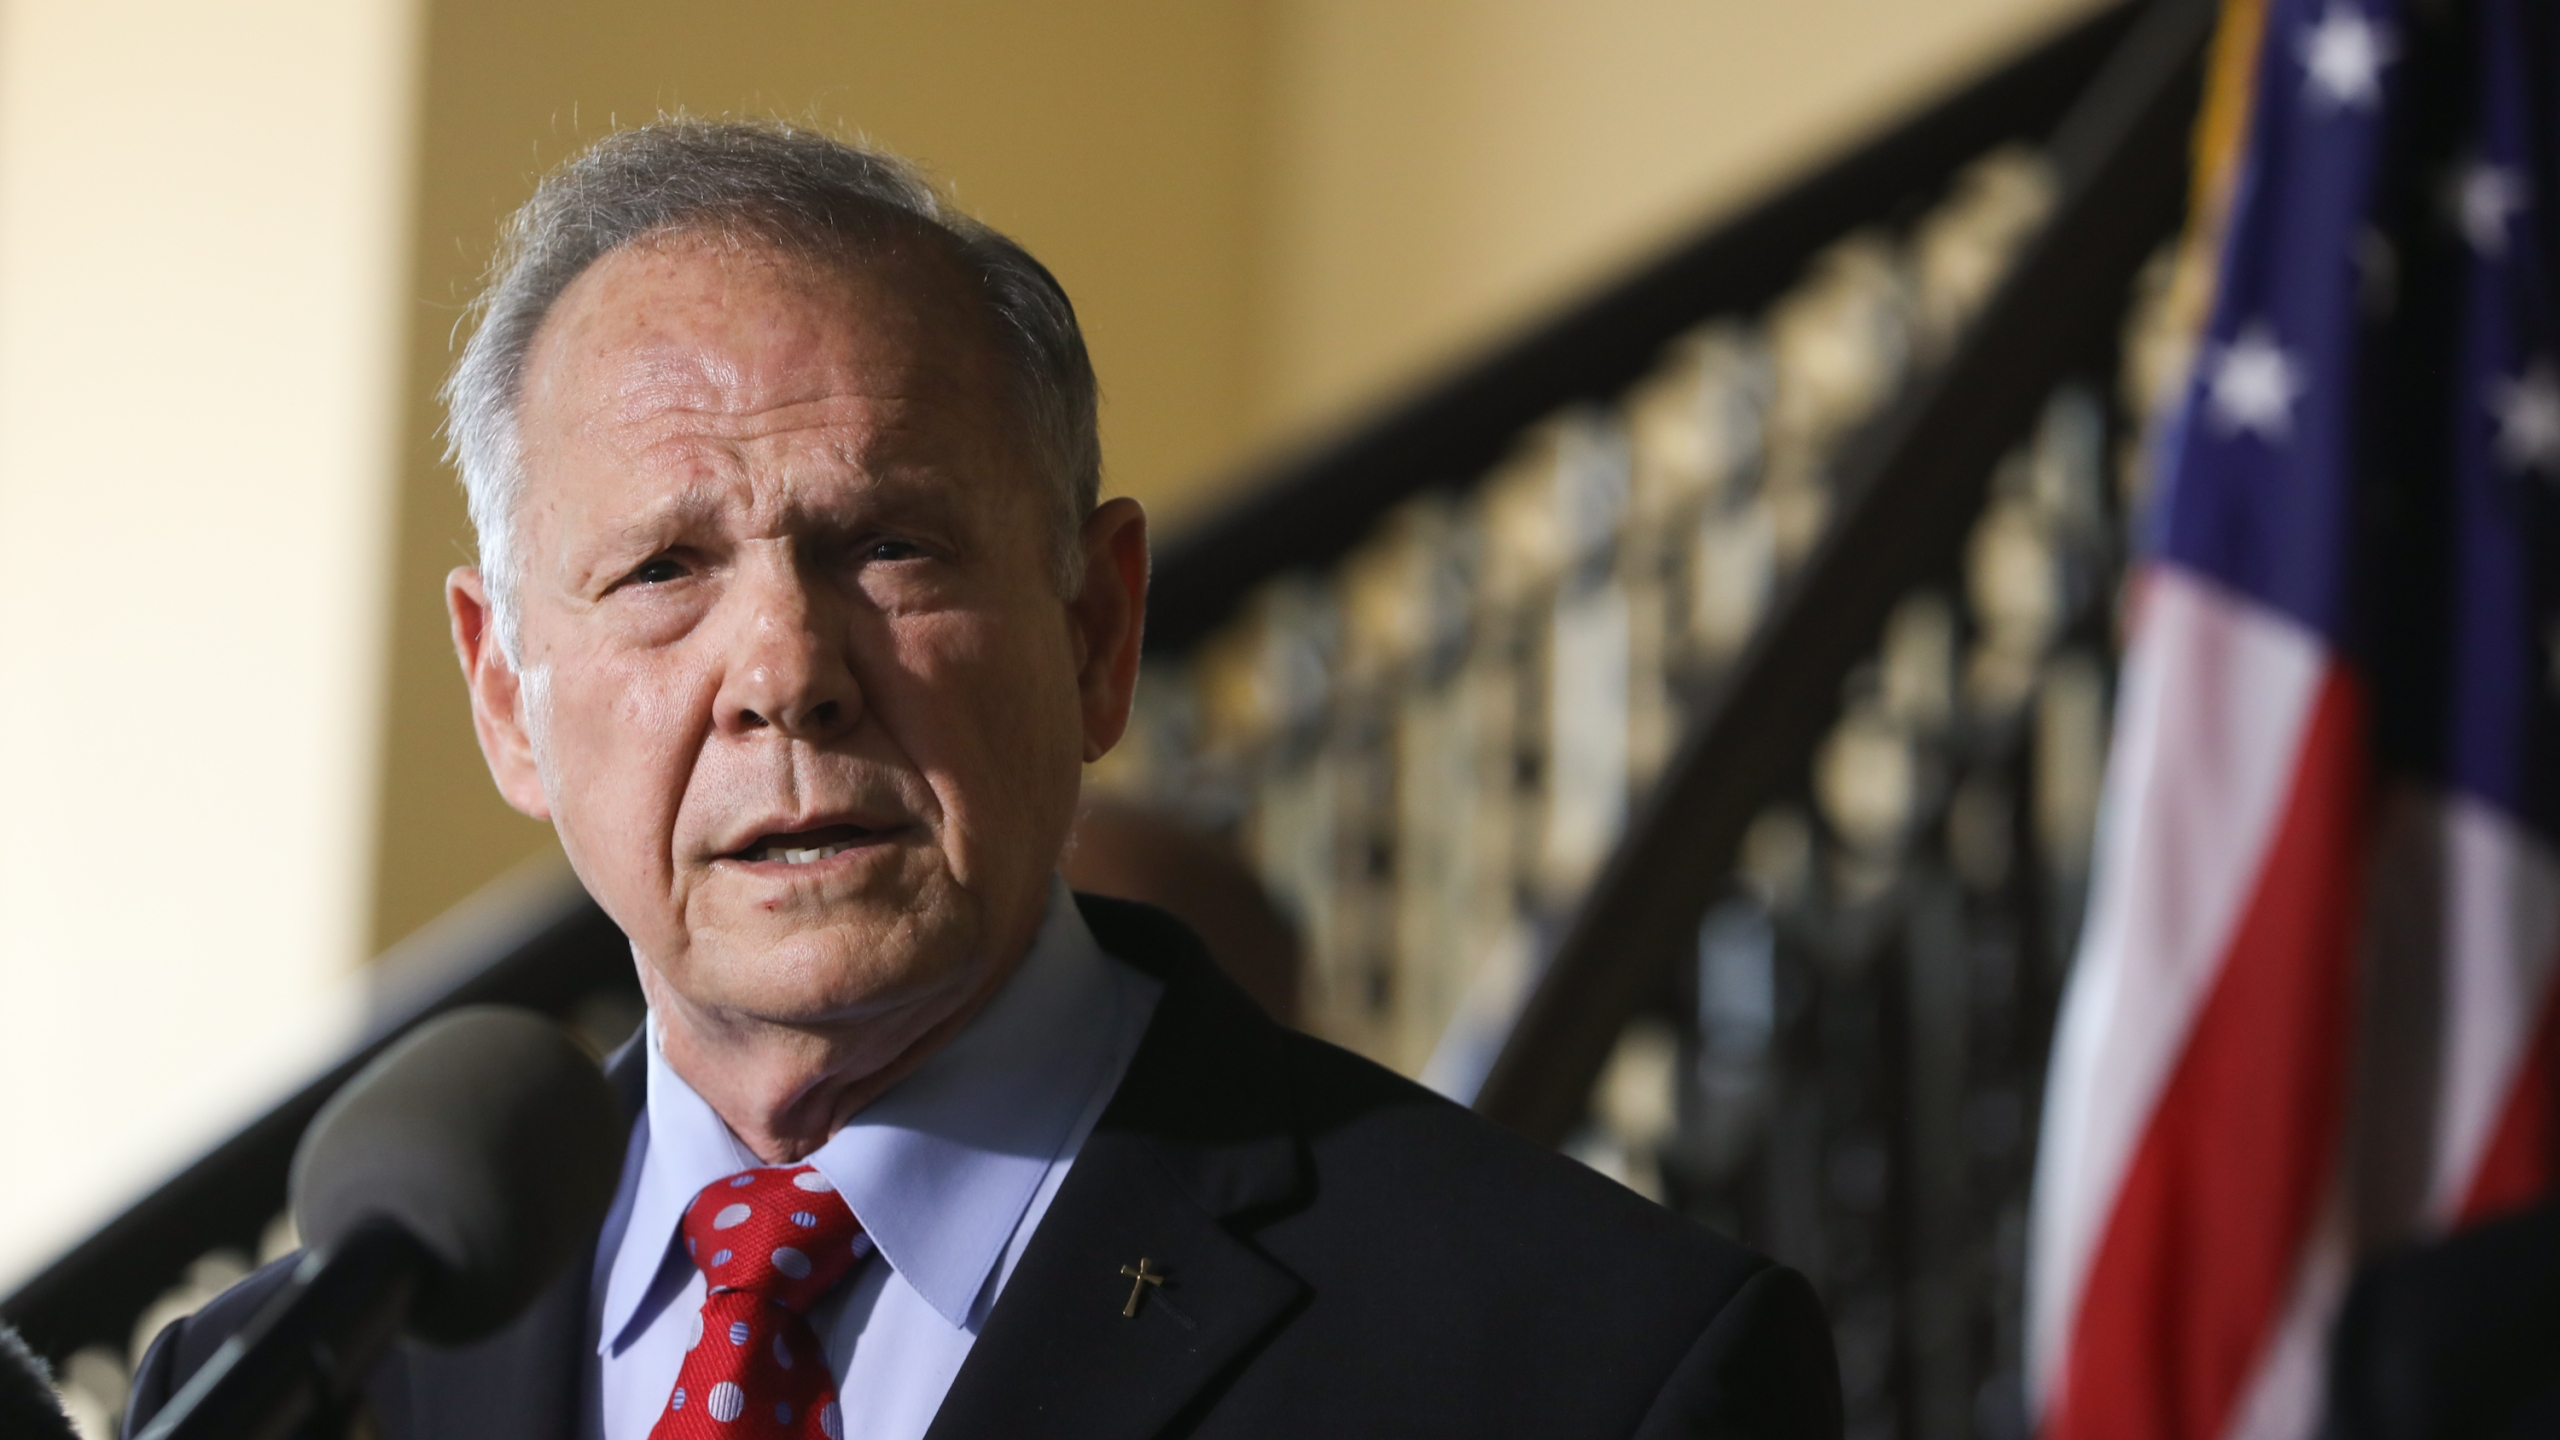 Roy Moore announces his plans to run for U.S. Senate in 2020 on June 20, 2019, in Montgomery, Alabama. (Credit: Jessica McGowan/Getty Images)